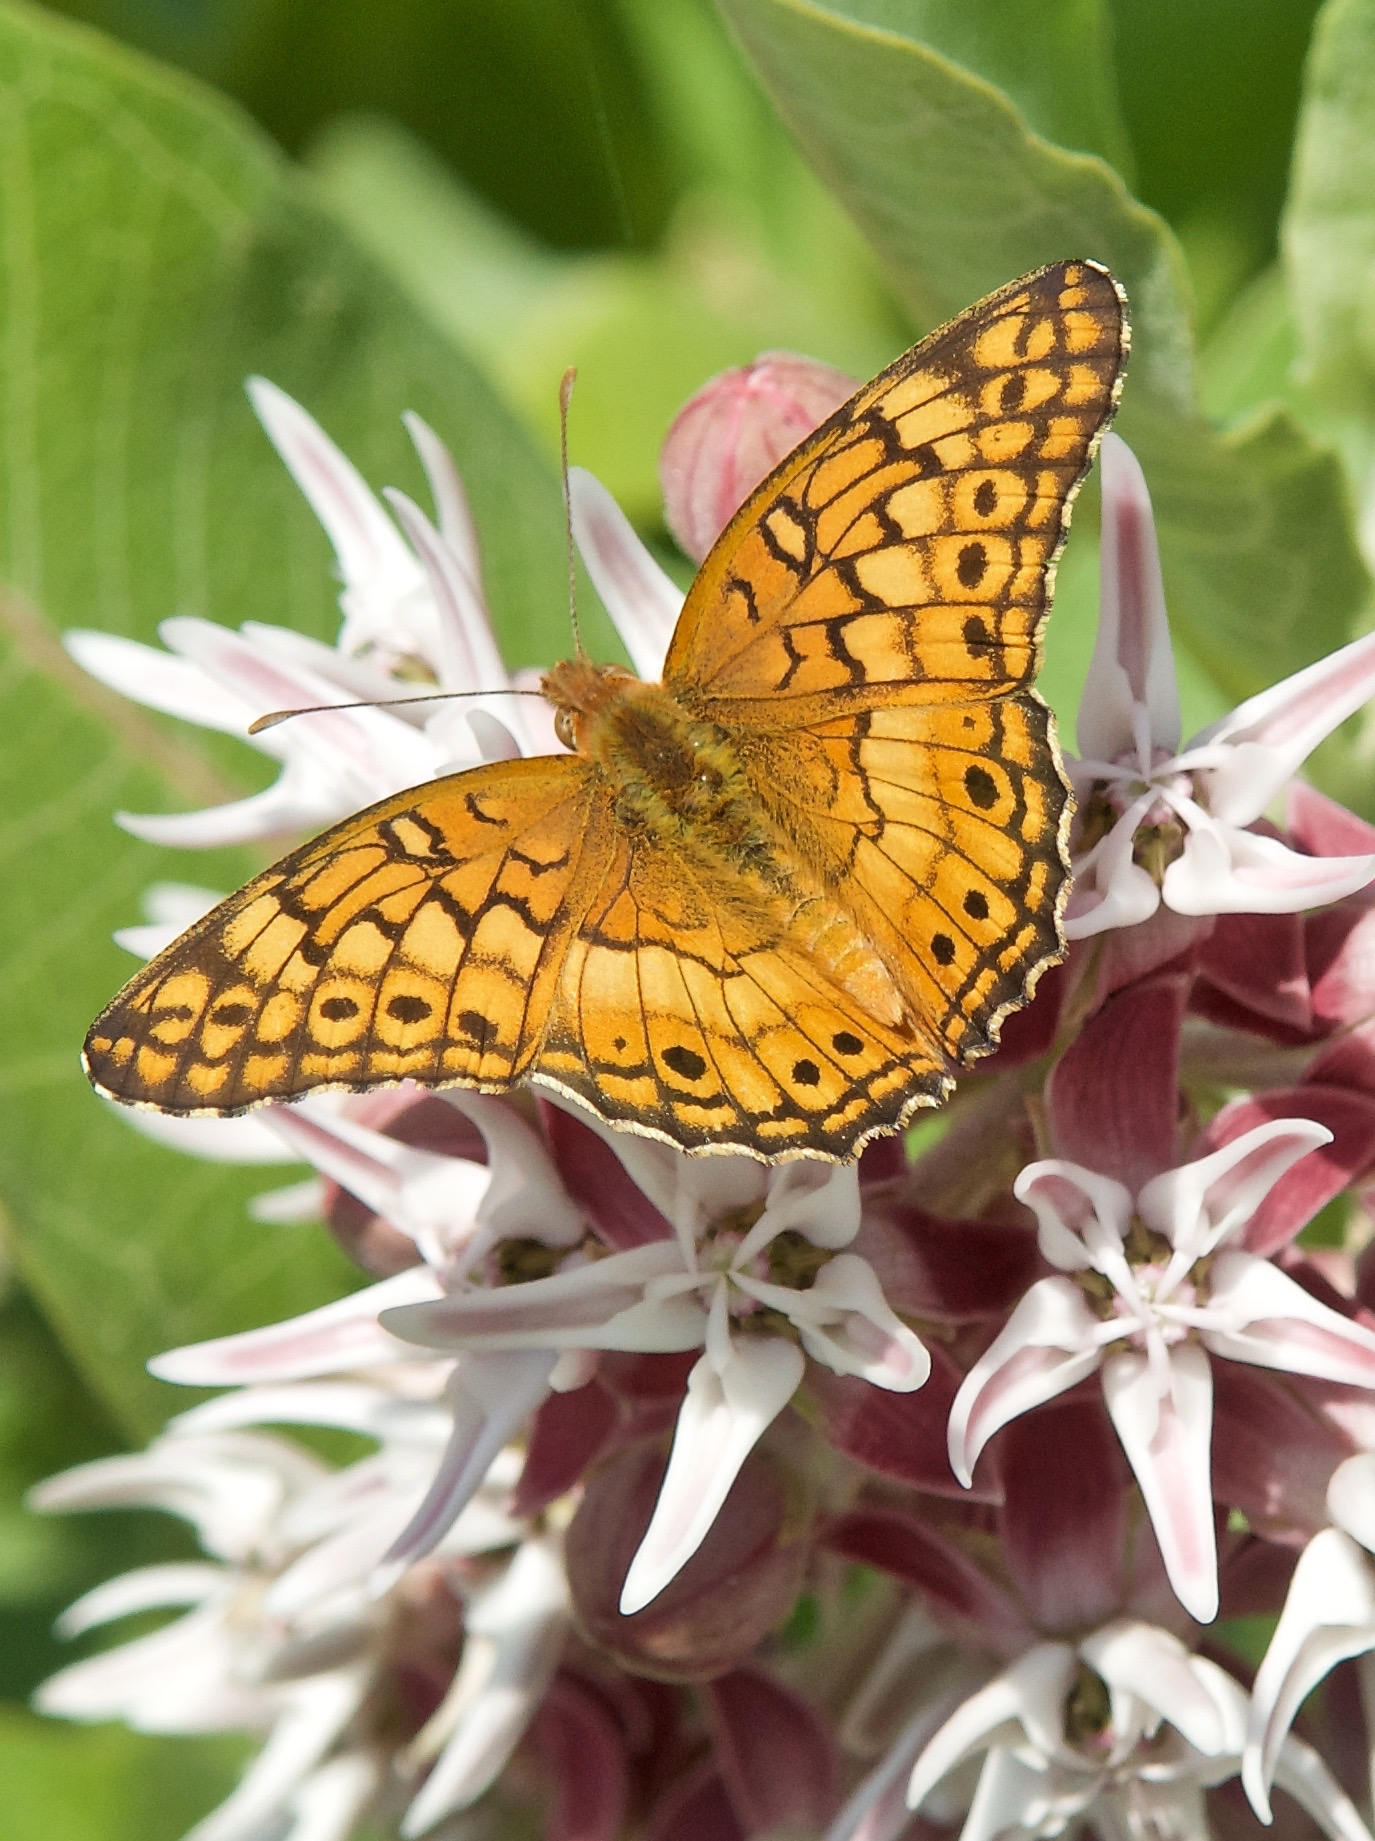 Variegated Fritillary (Euptoieta claudia ) on Milkweed